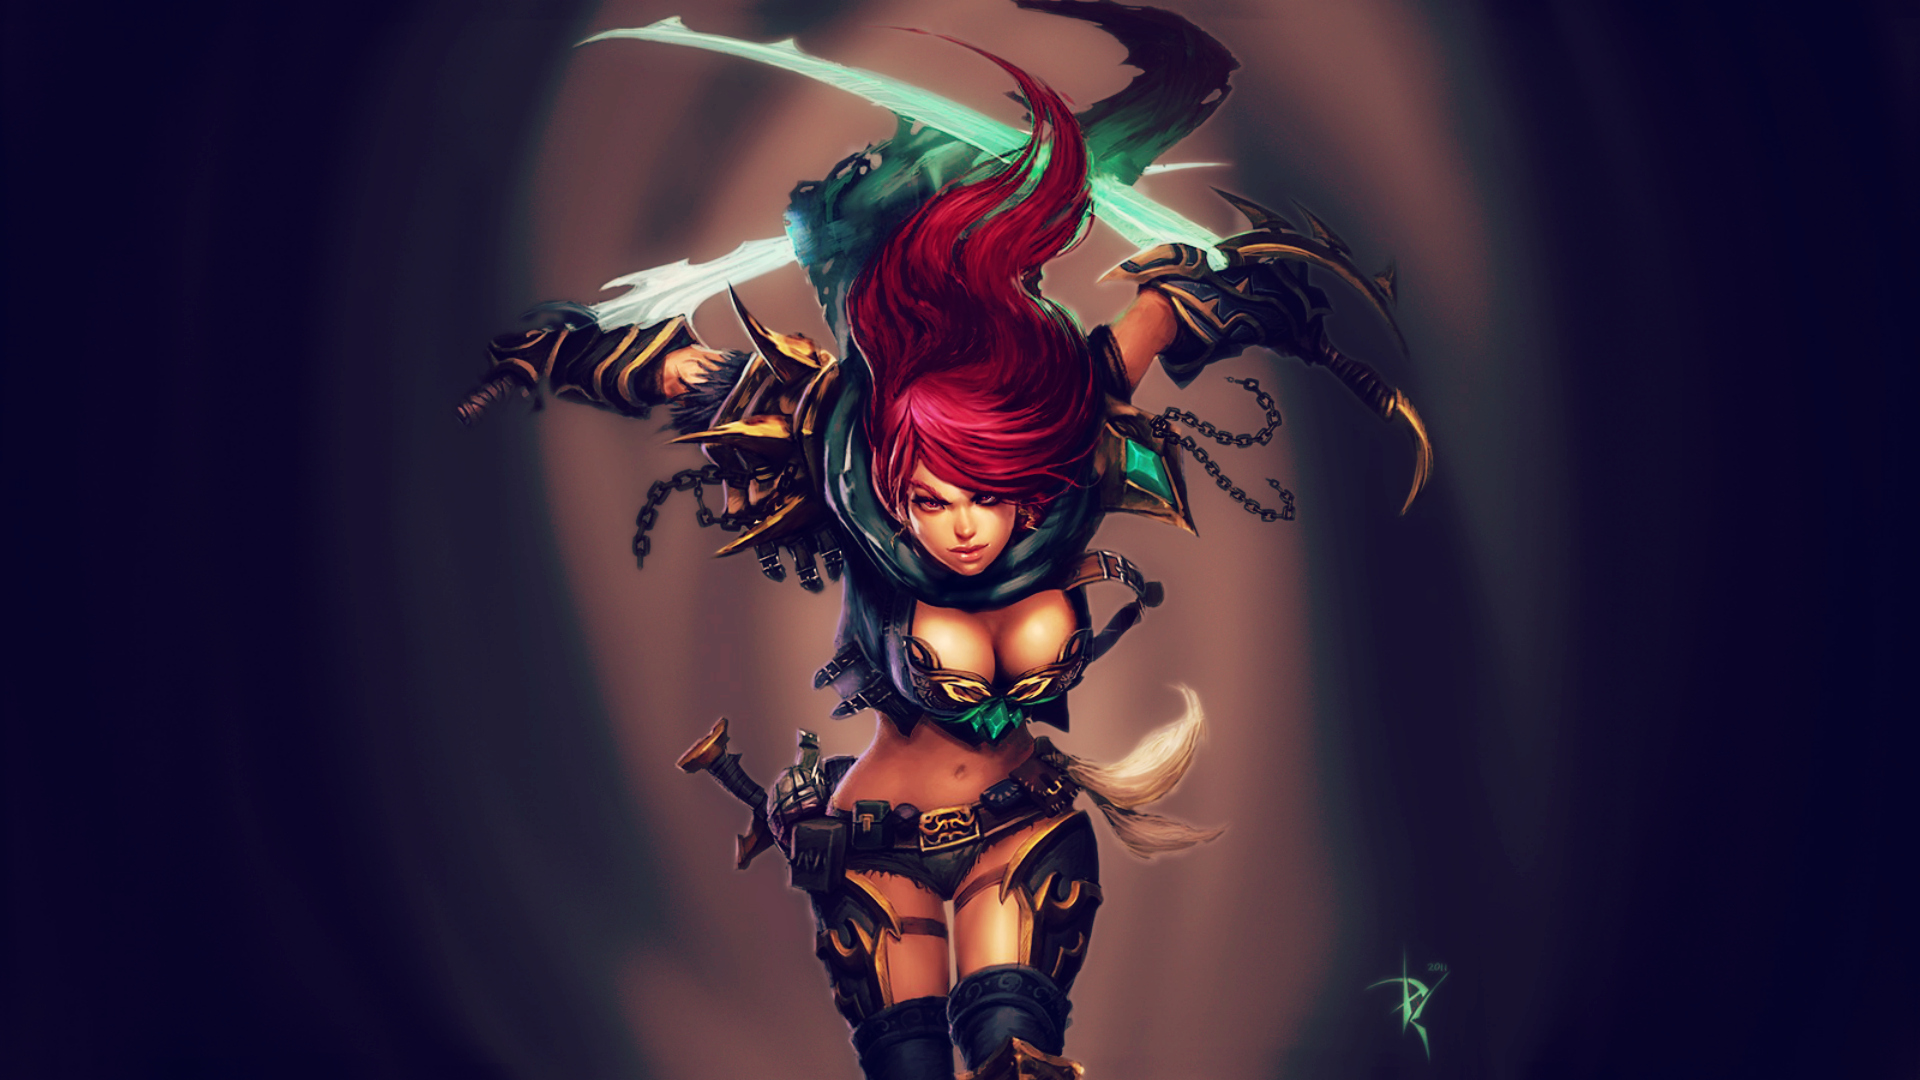 League Of Legends HD wallpapers free download